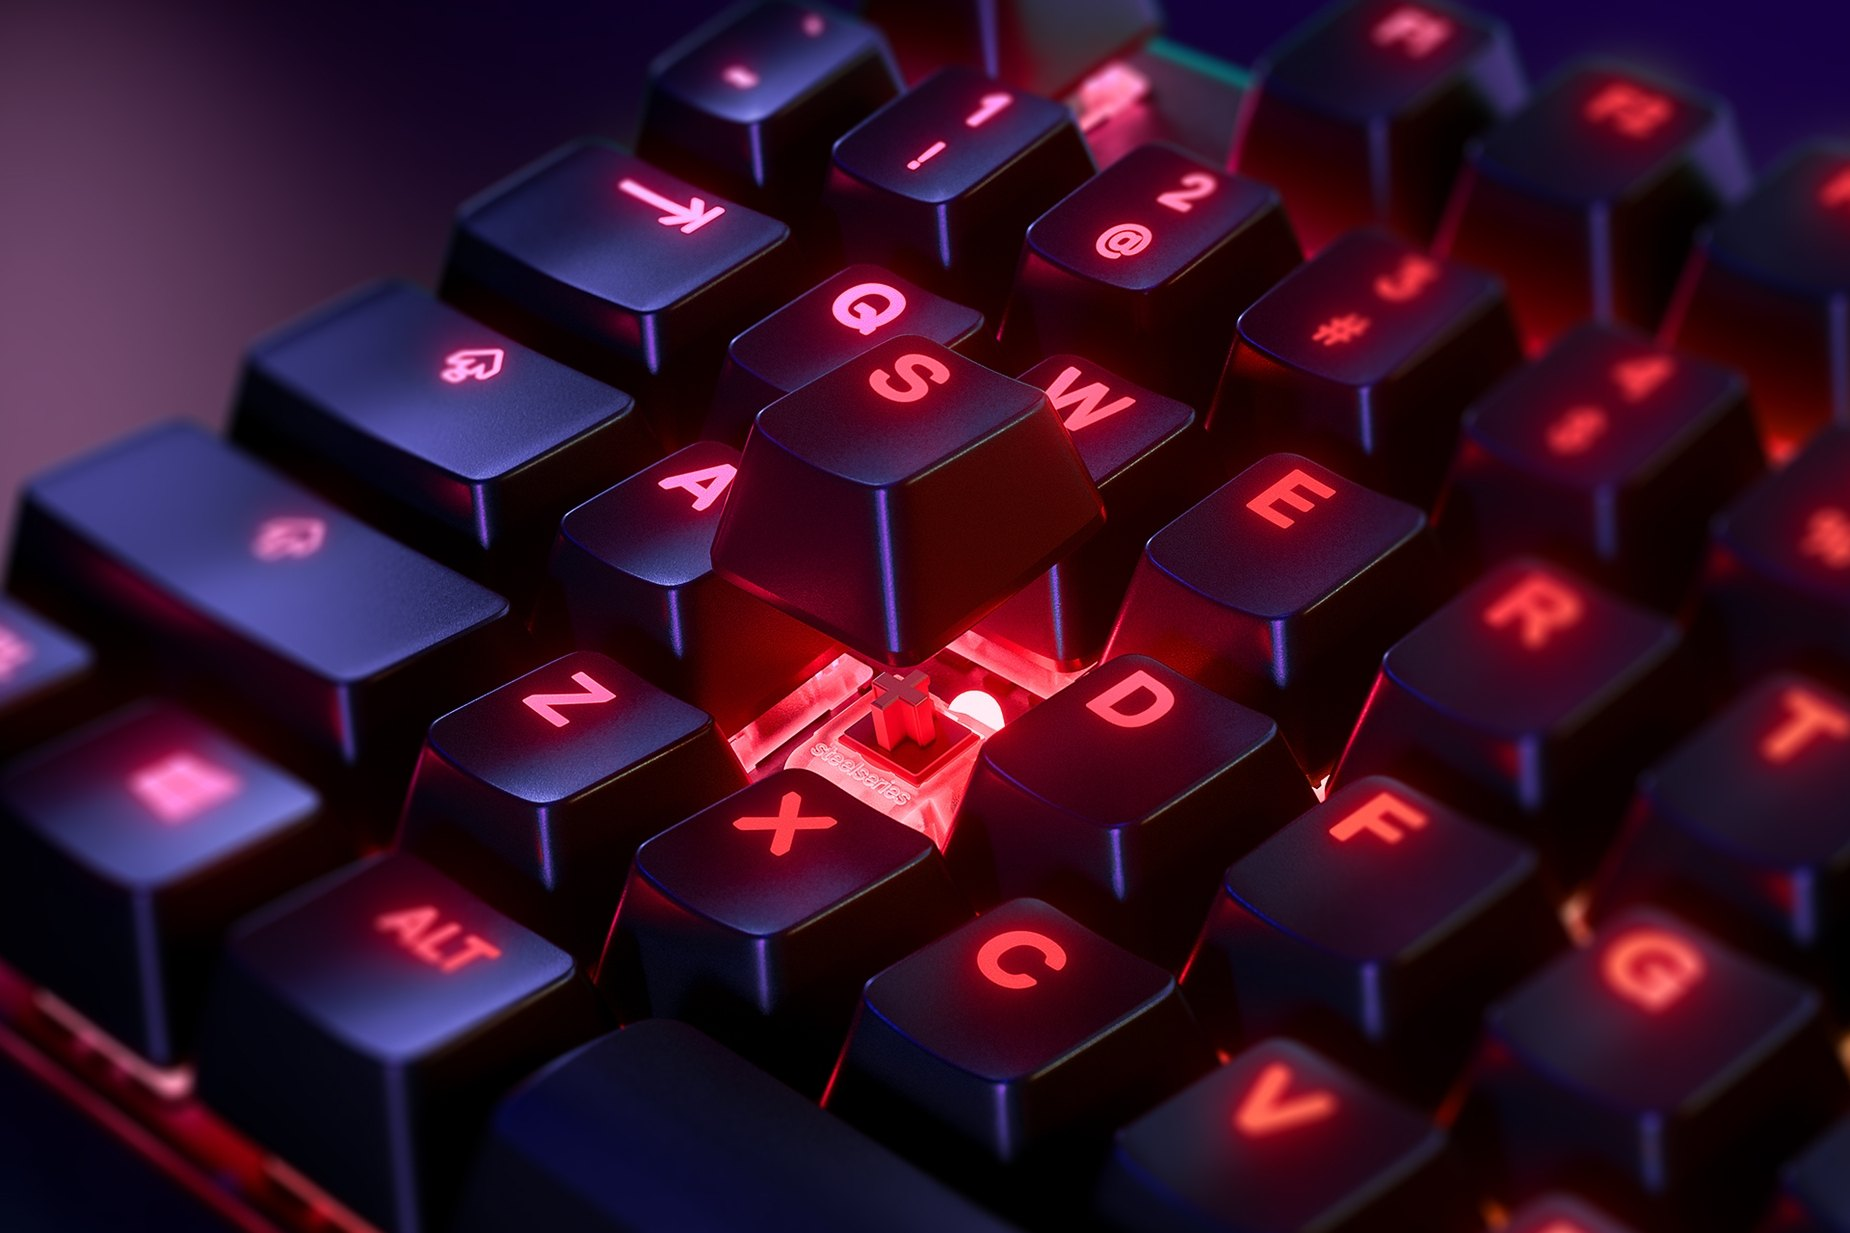 Zoomed in view of a single key on the German - Apex 7 TKL (Red Switch) gaming keyboard, the key is raised up to show the SteelSeries QX2 Mechanical RGB Switch underneath